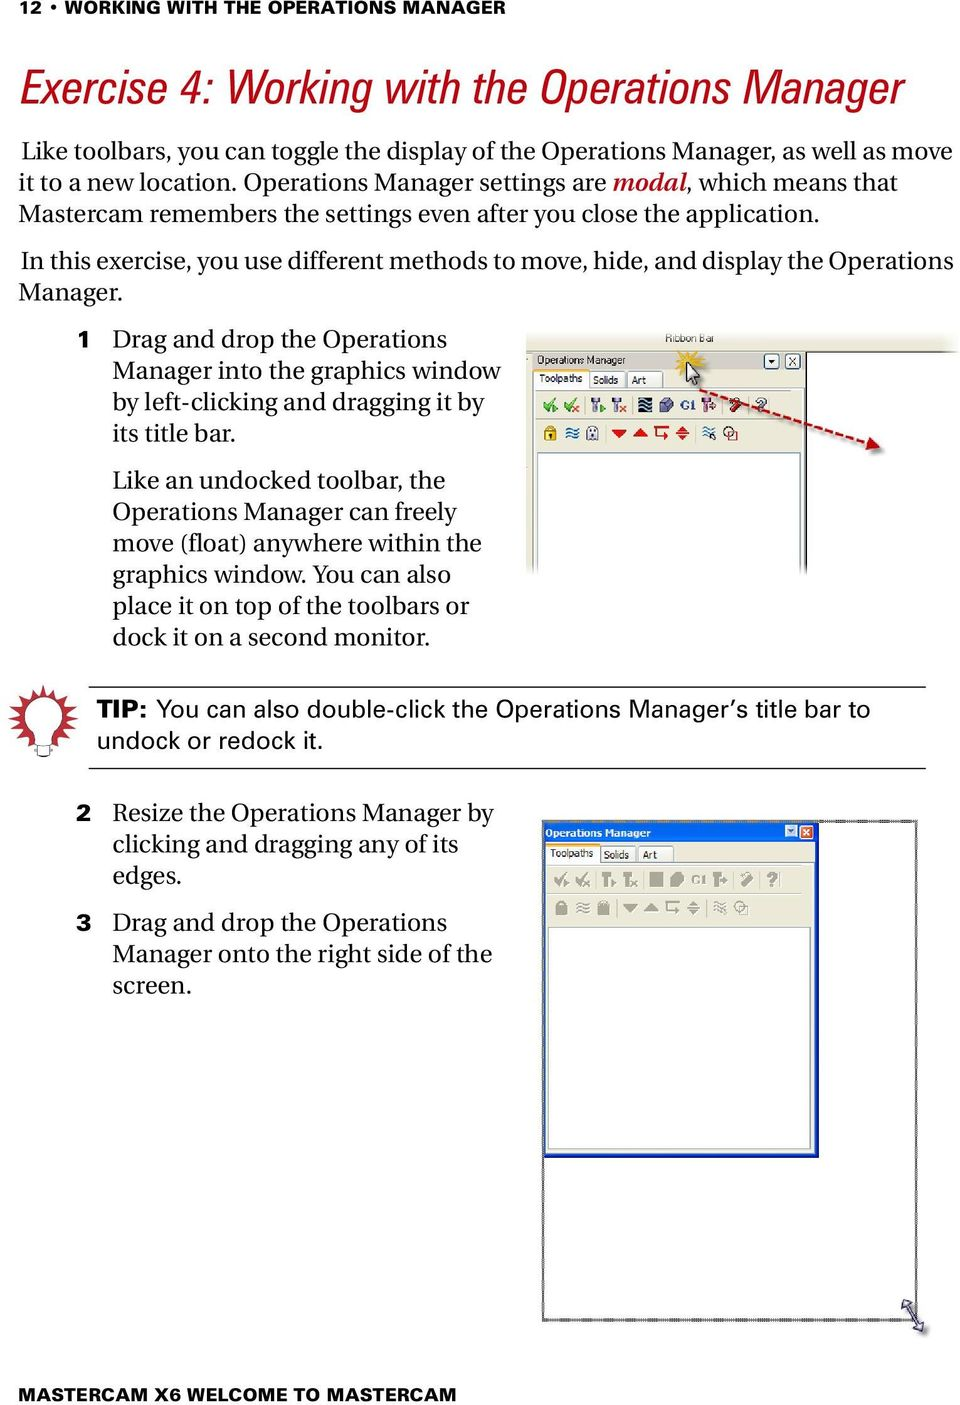 In this exercise, you use different methods to move, hide, and display the Operations Manager.